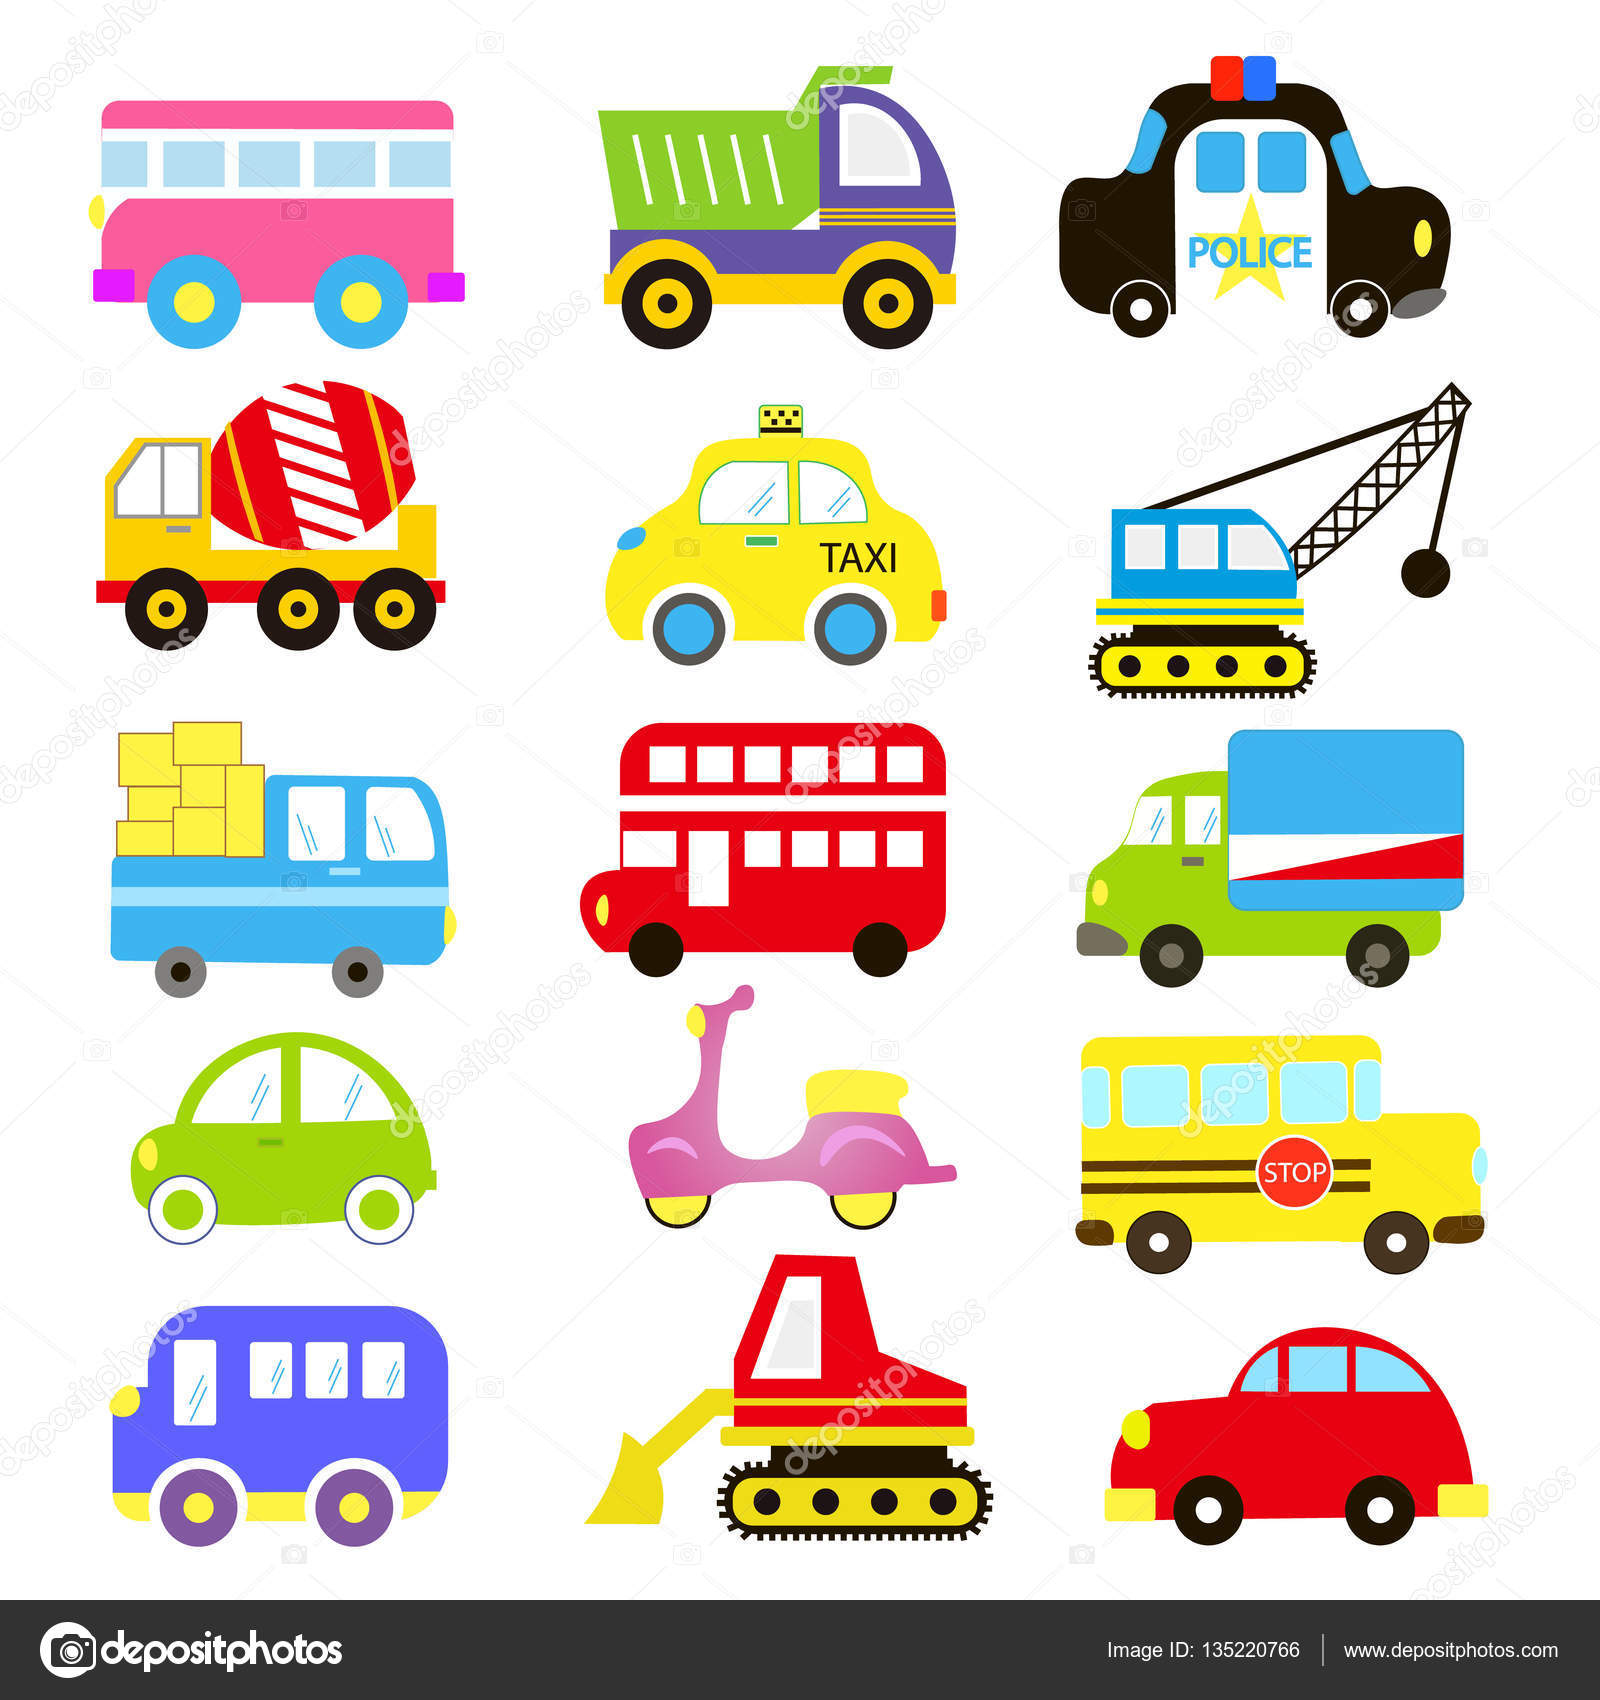 Gmail theme bus stop